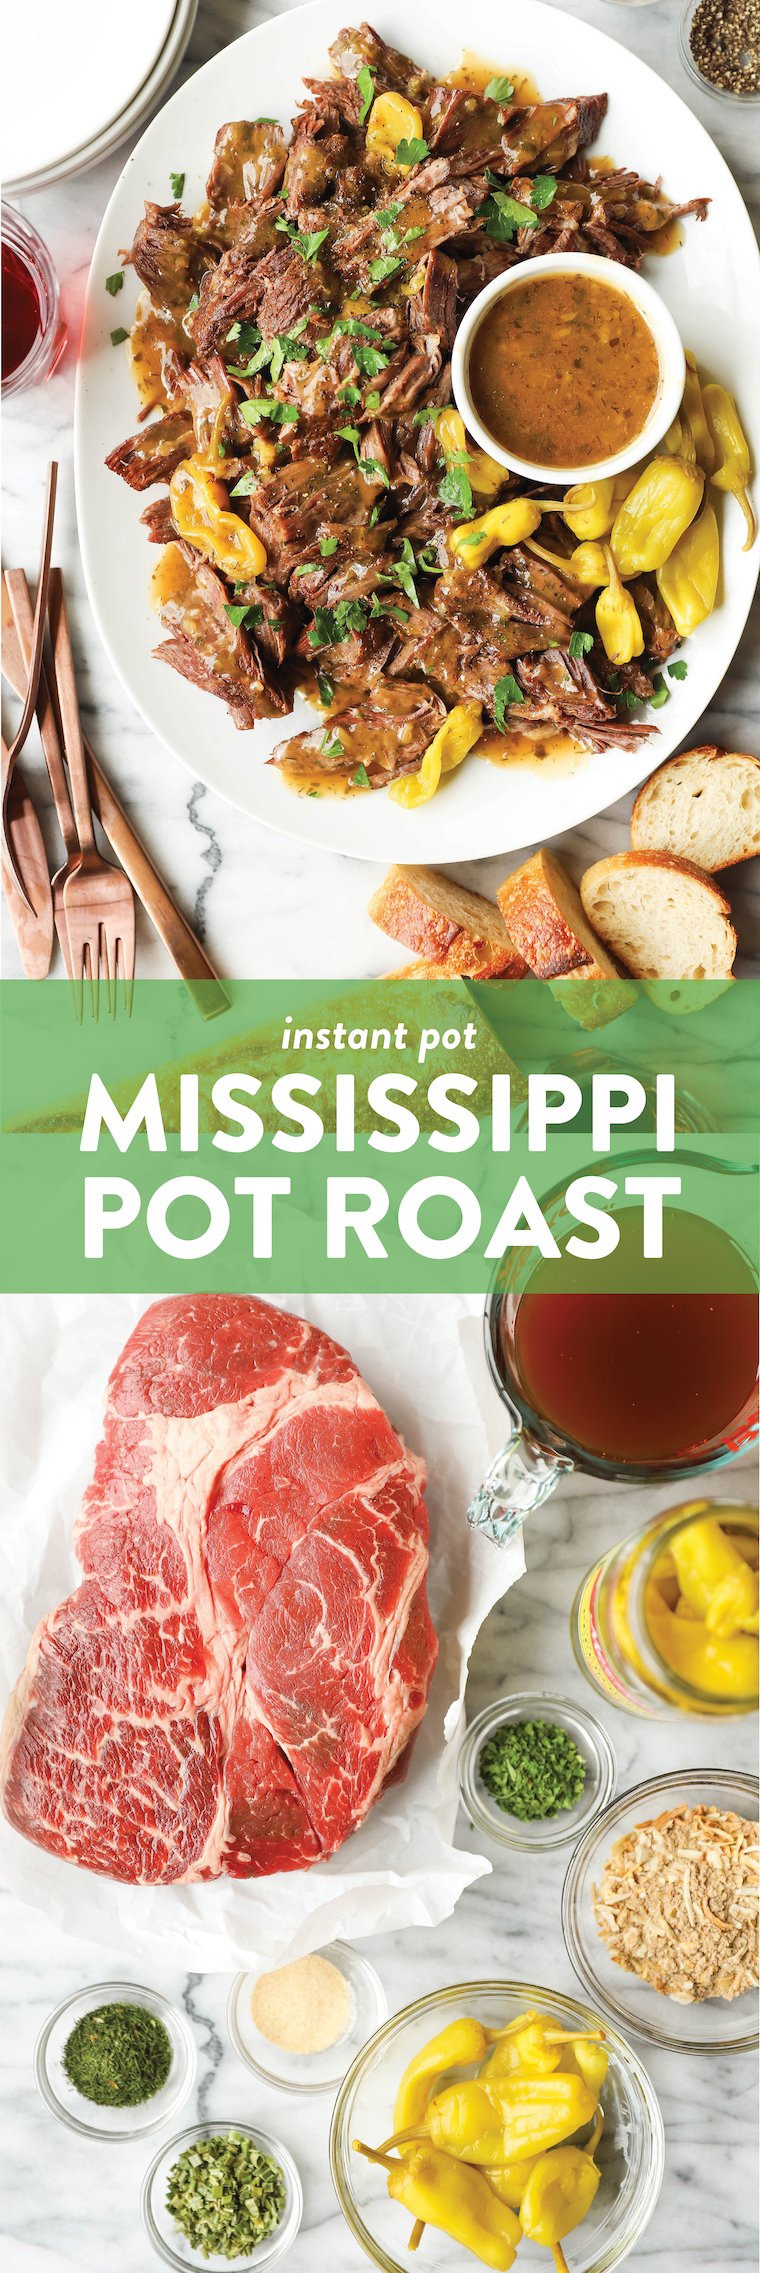 Instant Pot Mississippi Pot Roast - The most amazing pot roast ever! Made in the IP in just a fraction of the time. So juicy and melt-in-your-mouth tender!